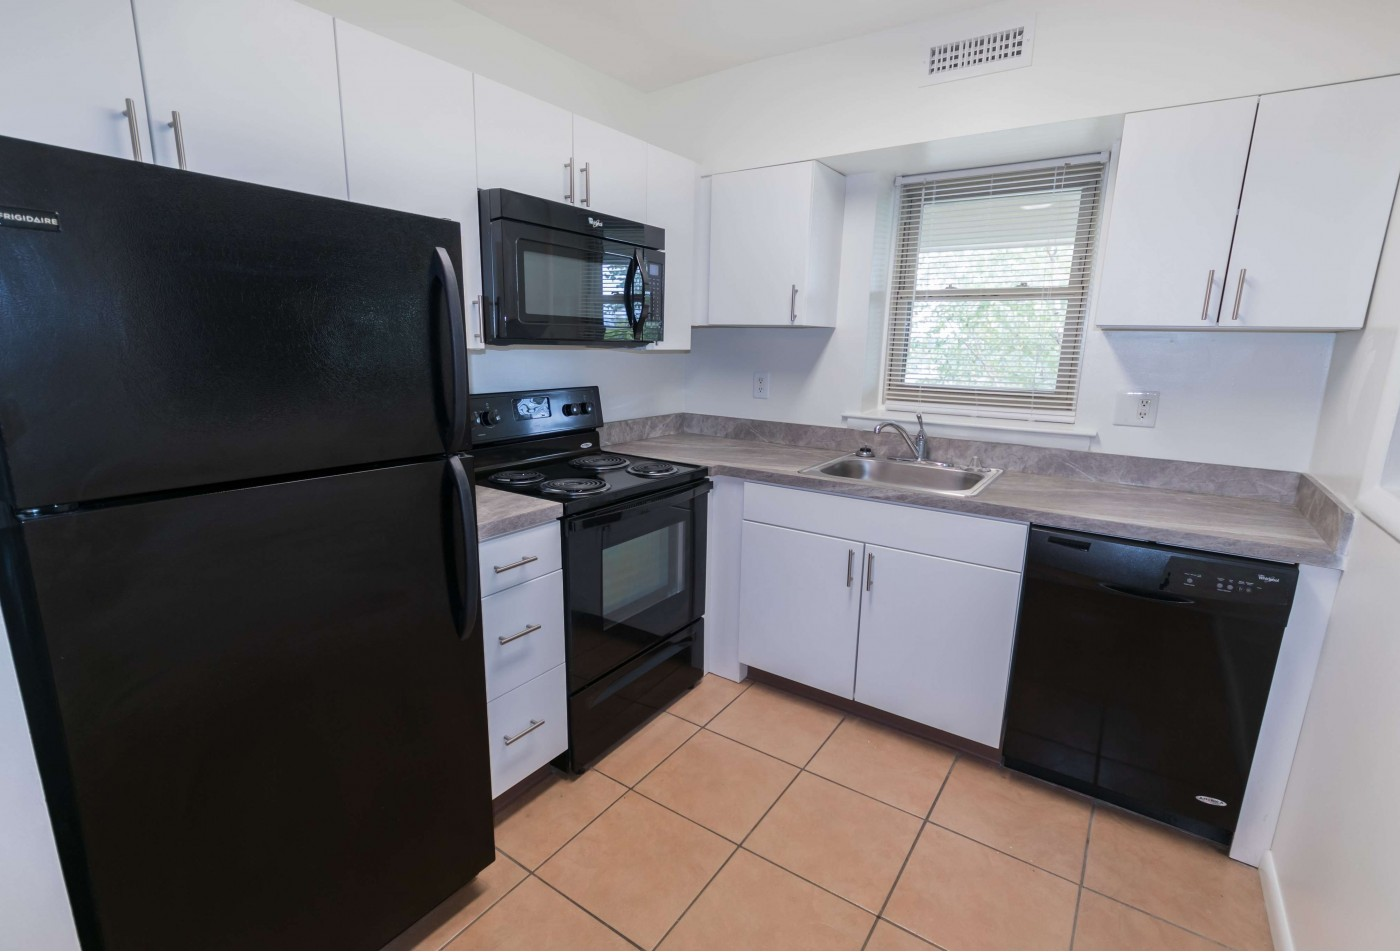 State-of-the-Art Kitchen | Shillington PA Apartment Homes | Governor Mifflin Apartments